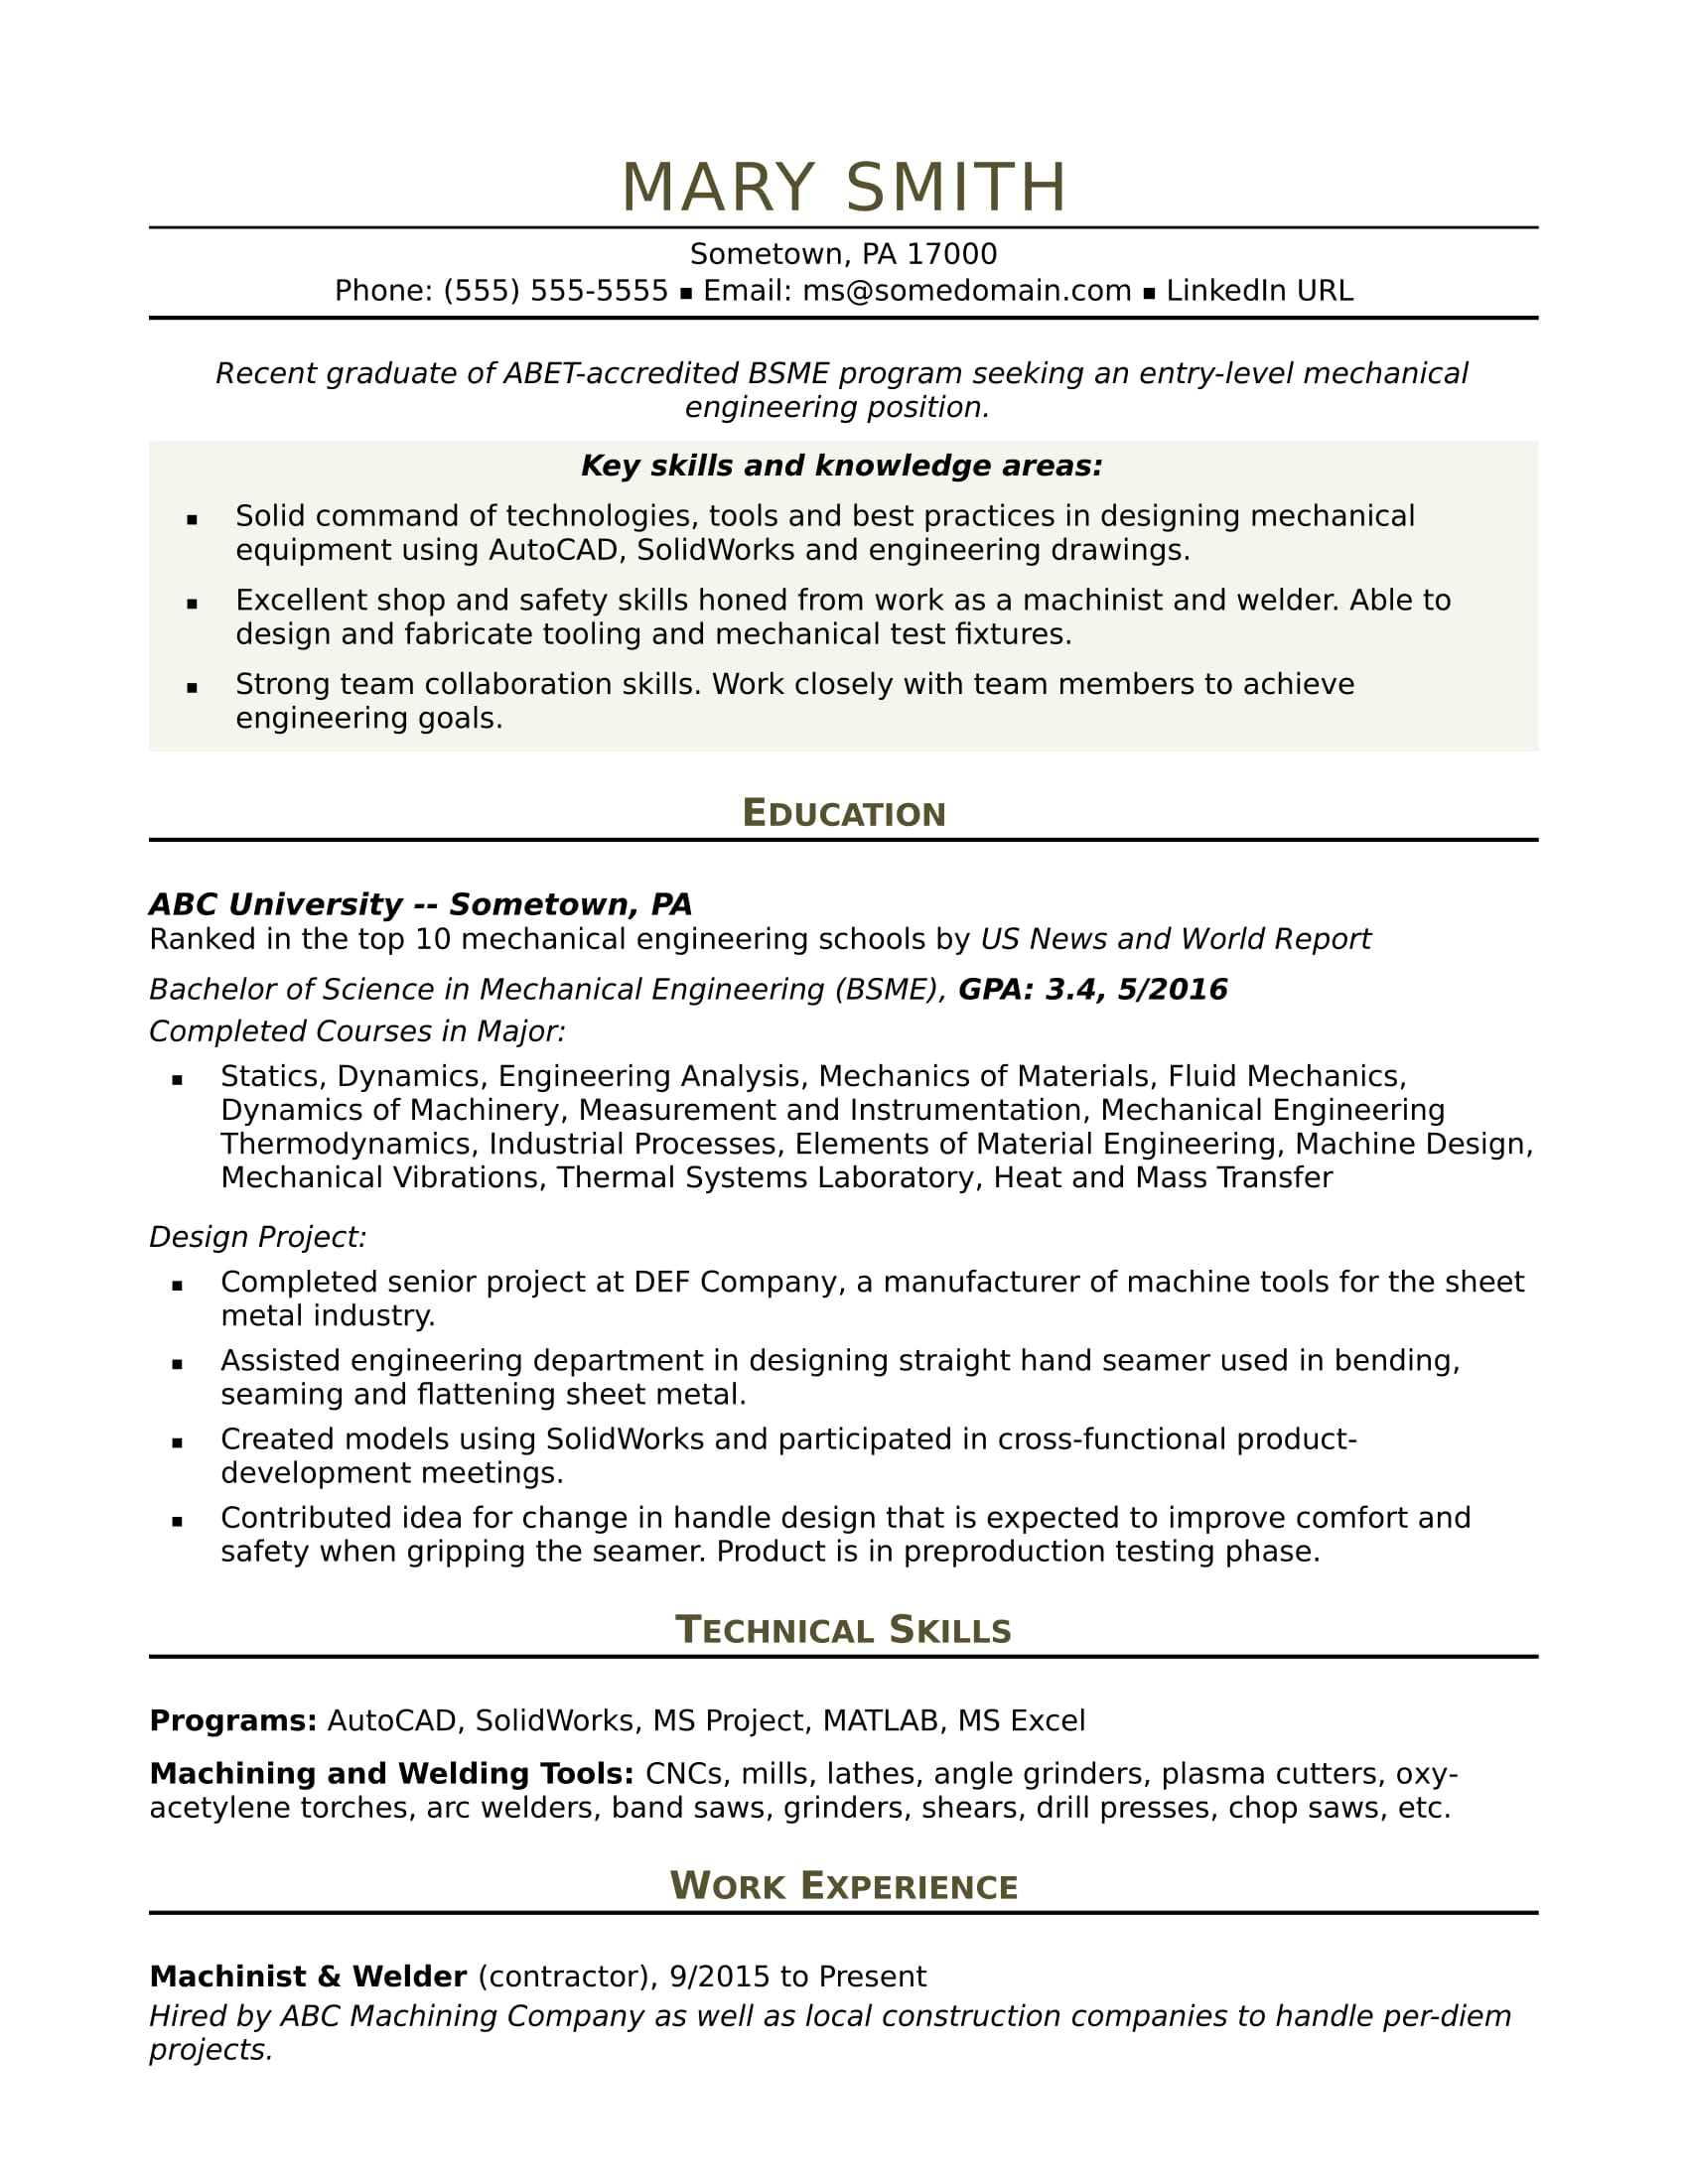 Resume Objective For Civil Engineering Student Sample Resume For An Entry Level Mechanical Engineer